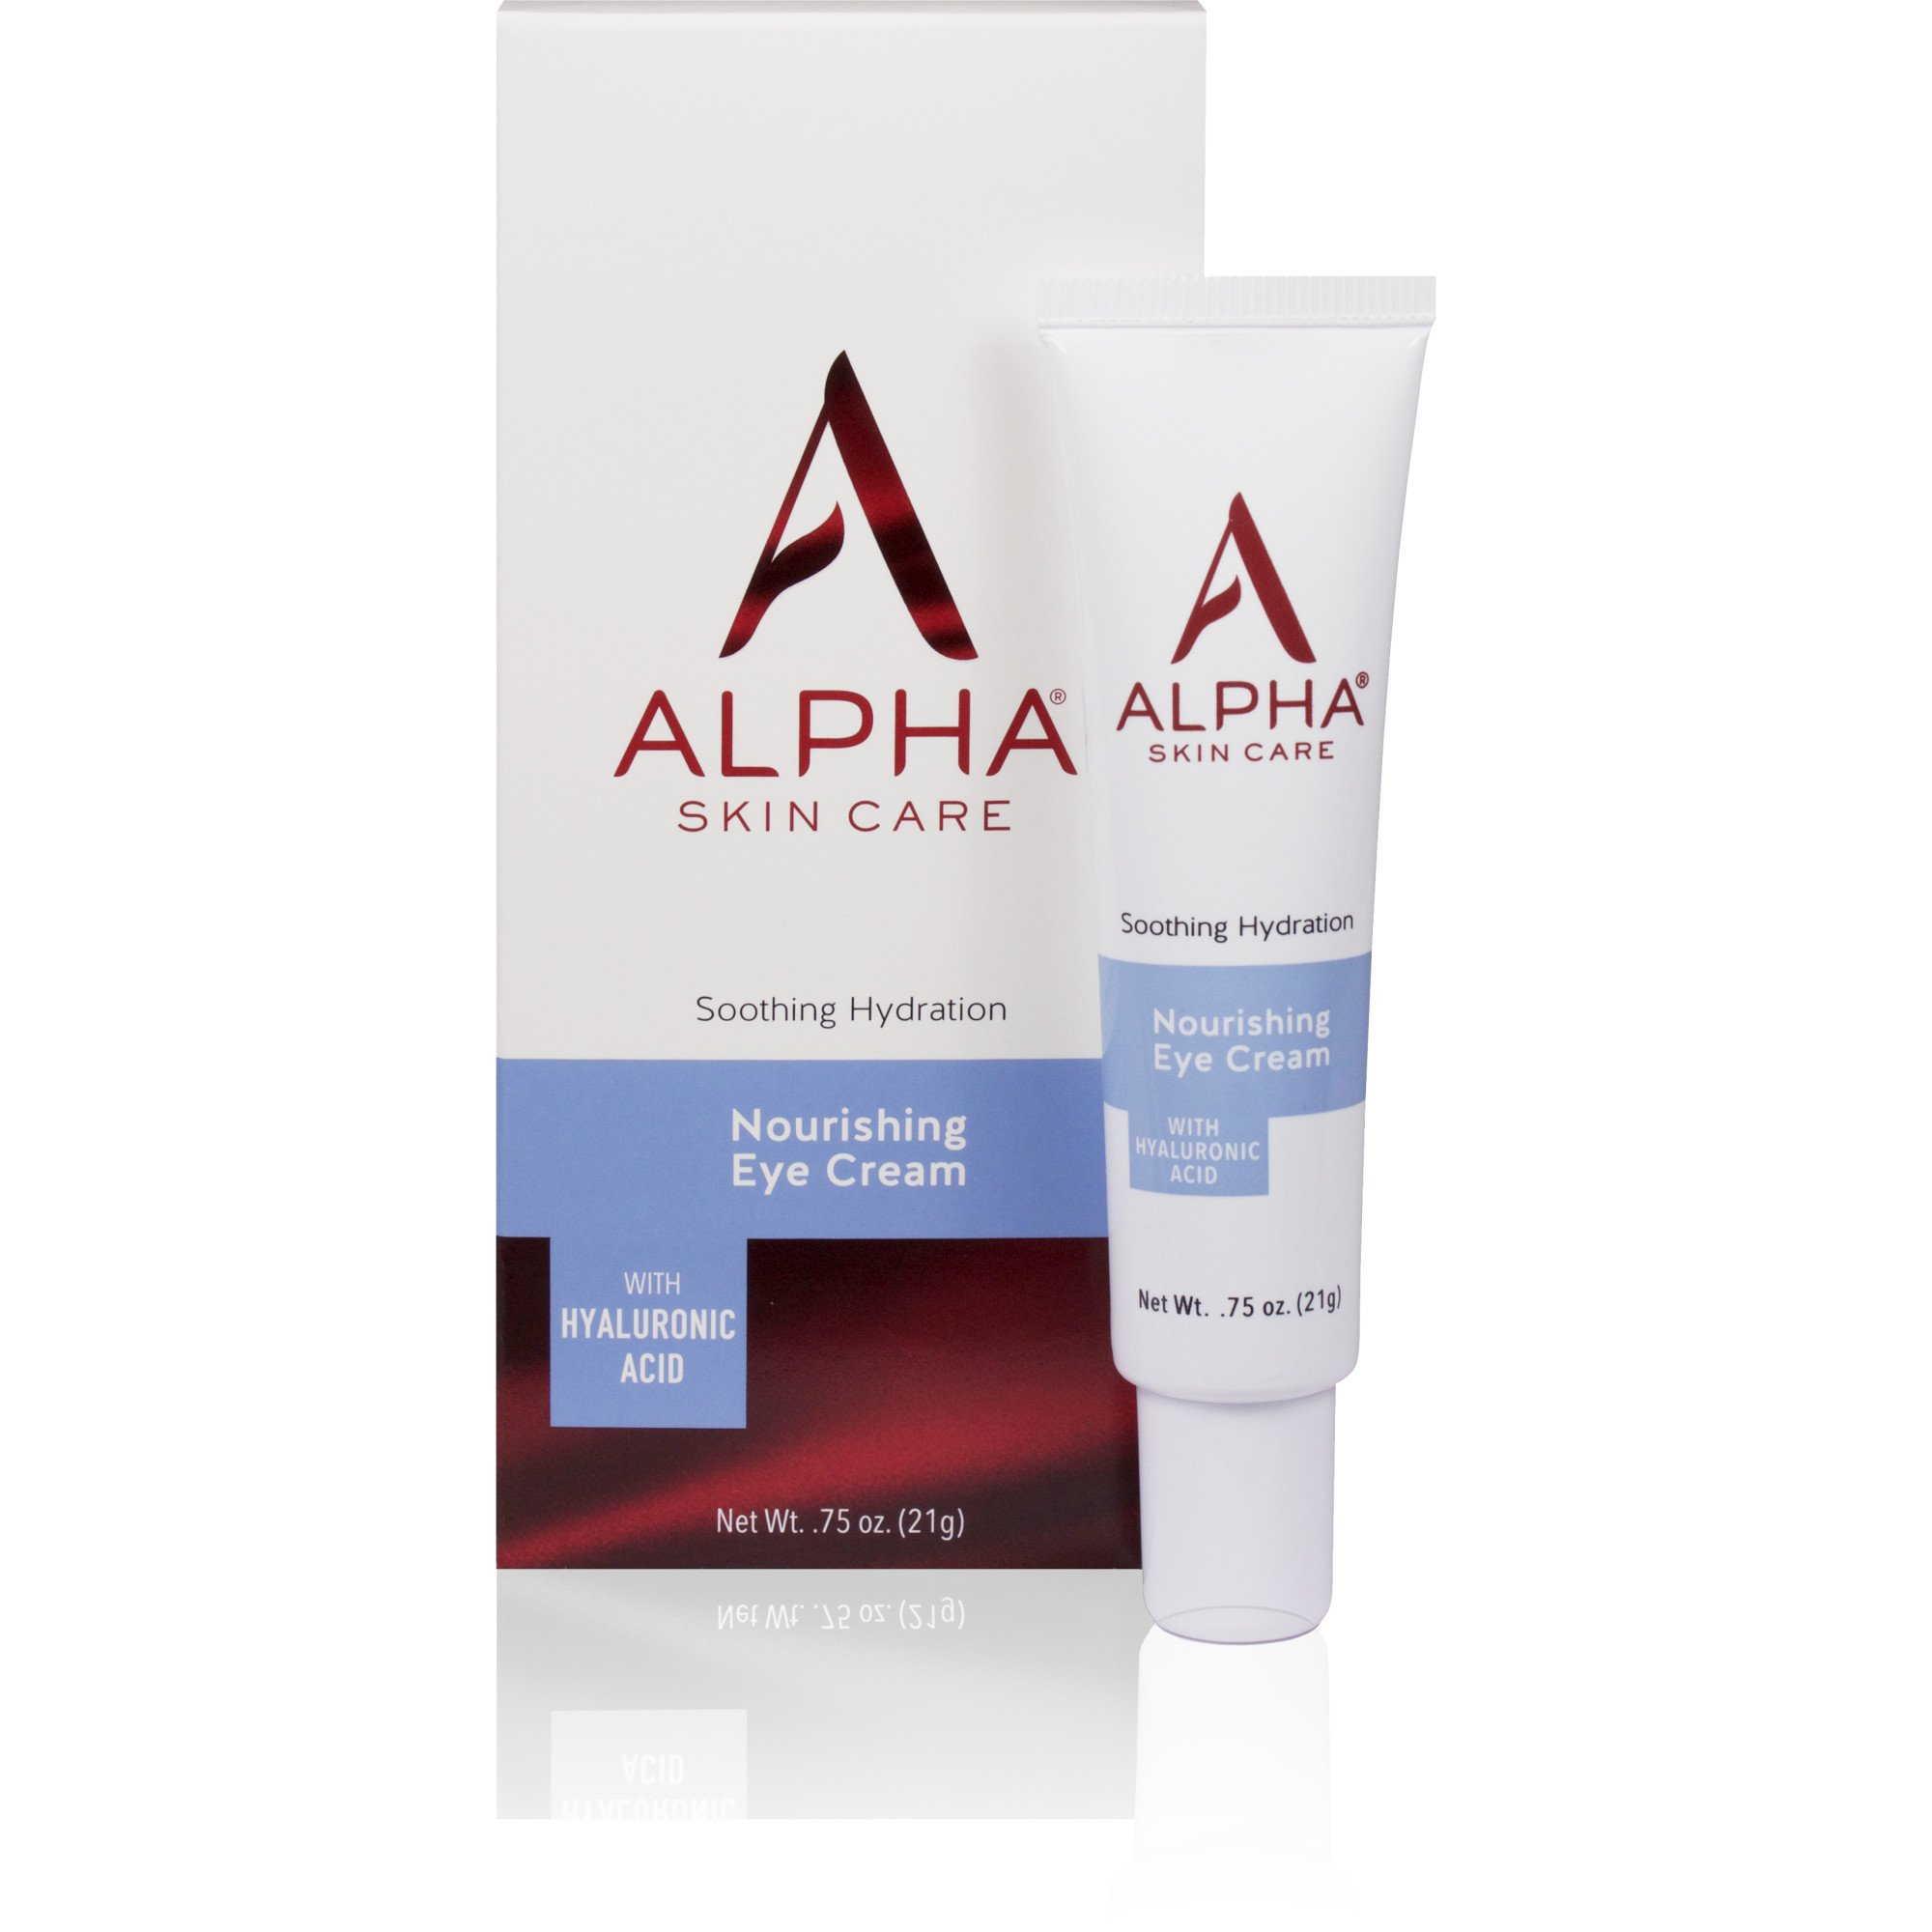 Alpha Skin Care - Nourishing Eye Cream, with Hyaluronic Acid, Soothing Hydration for Radiant Skin| Fragrance-Free and Paraben-Free| 0.75 Ounce (Packaging May Vary)